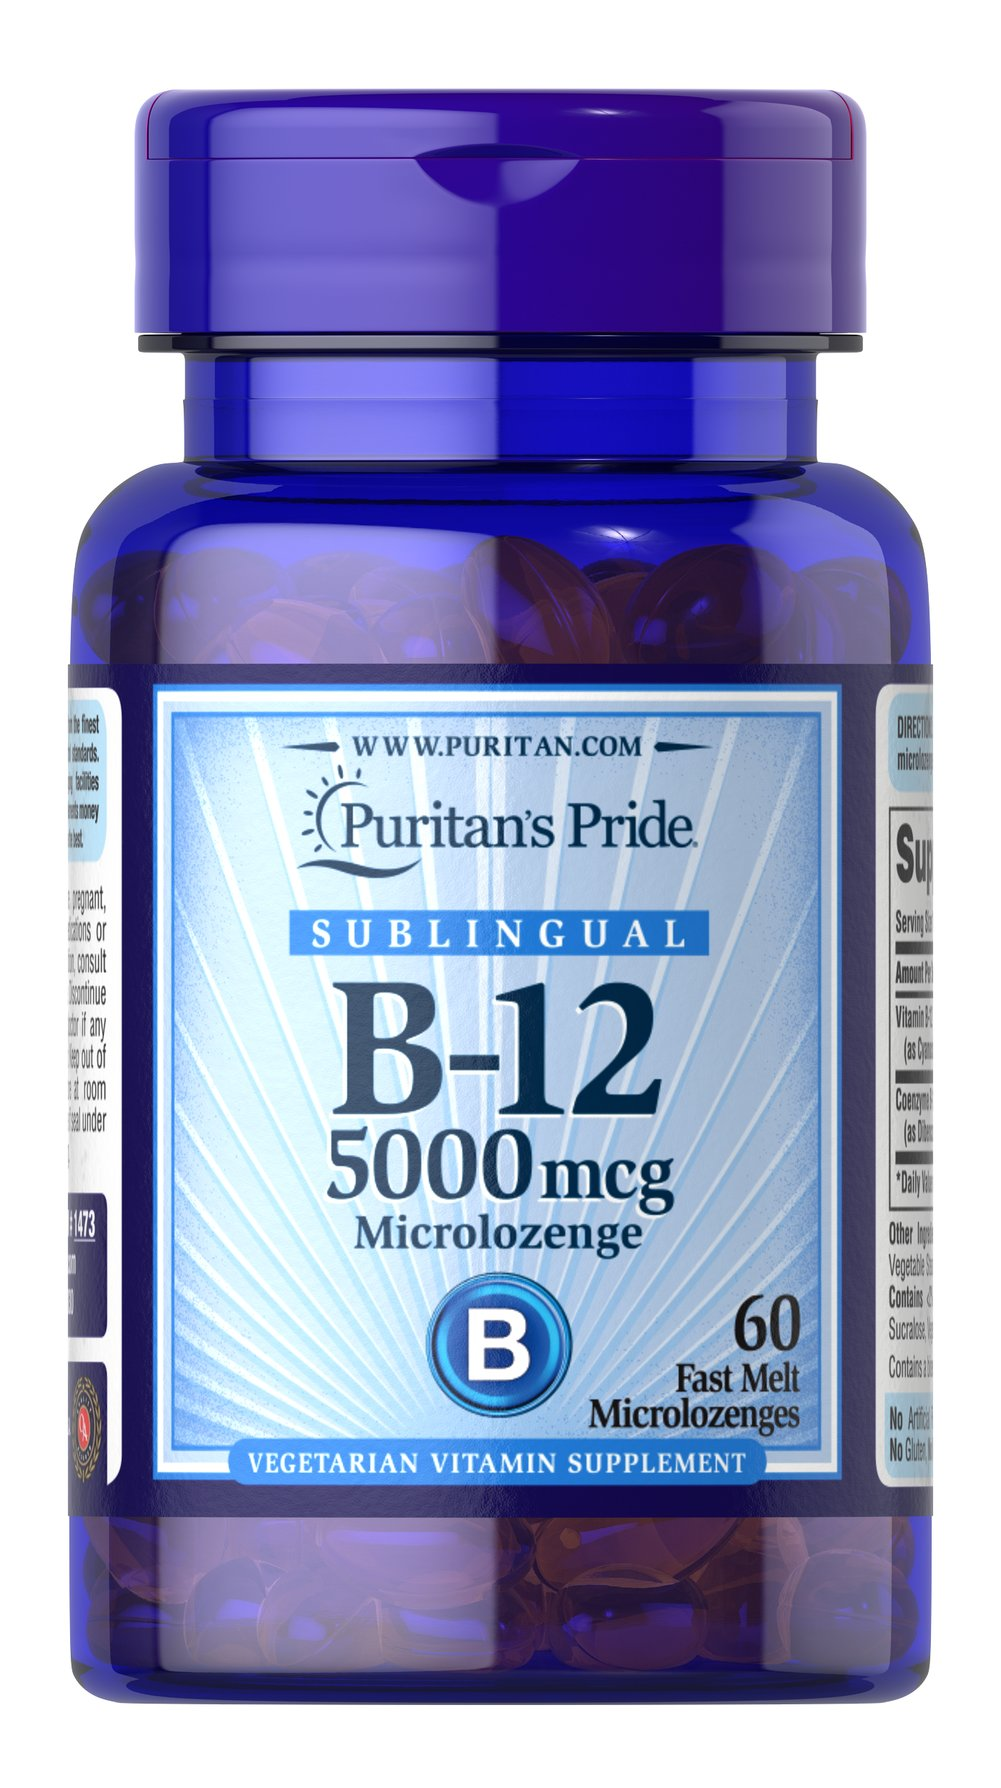 Vitamin B-12 5000 mcg Sublingual <p>Puritan's Pride's unique B-12  lozenges and dots deliver essential B vitamins for energy metabolism in the body.** Vitamin B-12 is also essential for the normal formation of blood cells, contributes to the health of the nervous system, and helps maintain circulatory health.** Adults can take one lozenge or dot daily with a meal. Place lozenge or dot under tongue for 30 seconds before swallowing.</p> 60 Microlozenges 5000 mcg $19.59